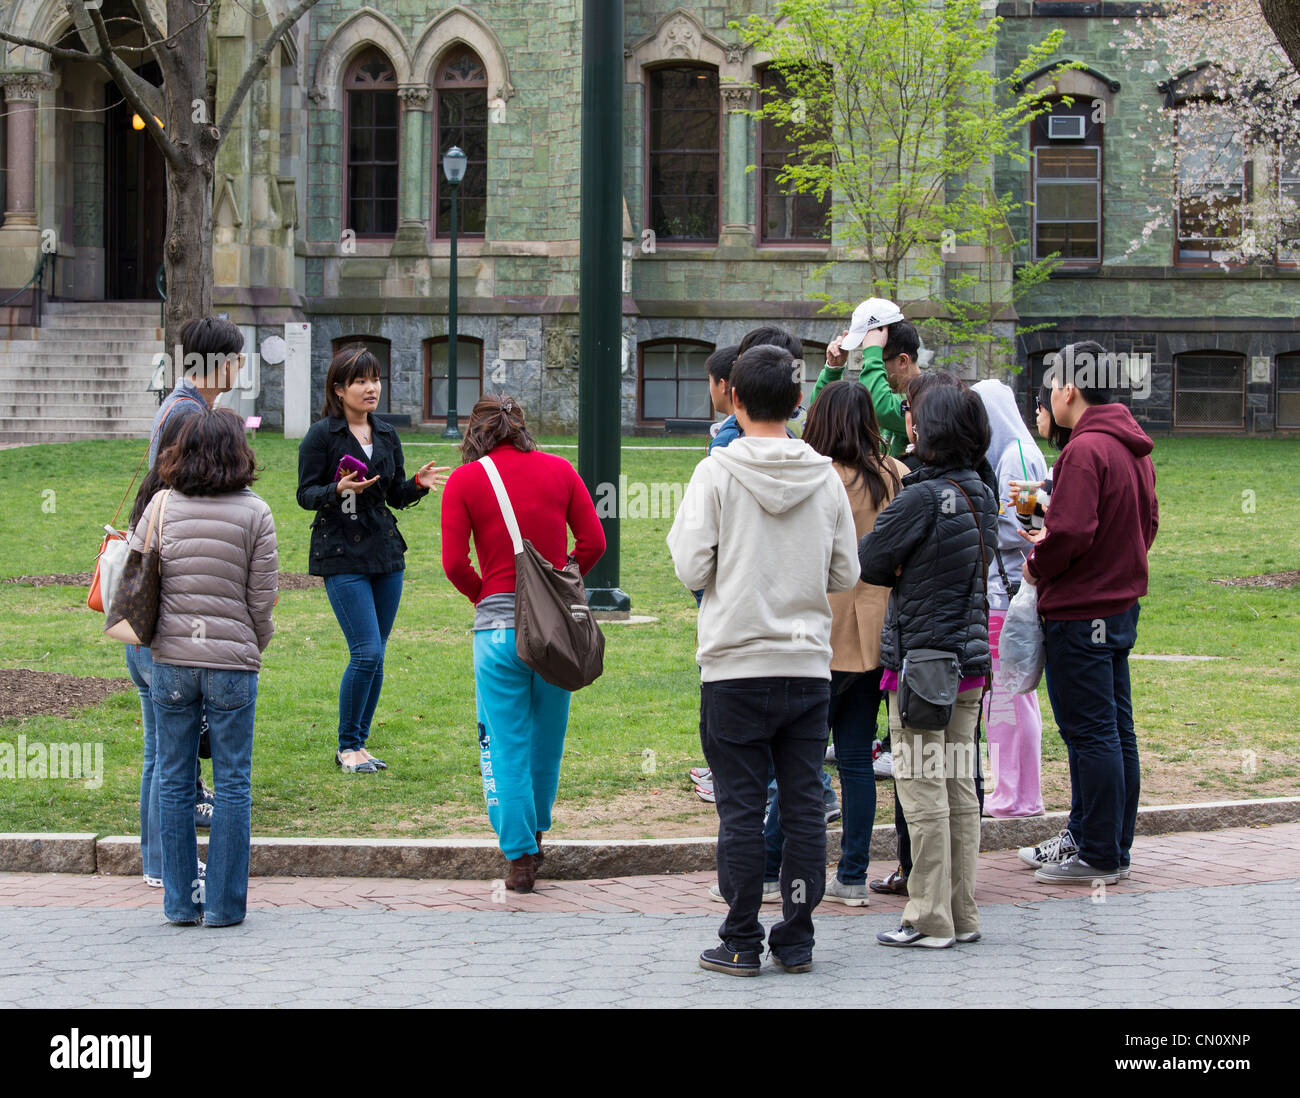 prospective students on student-led admissions office tour of University of Pennsylvania campus, Philadelphia, USA - Stock Image